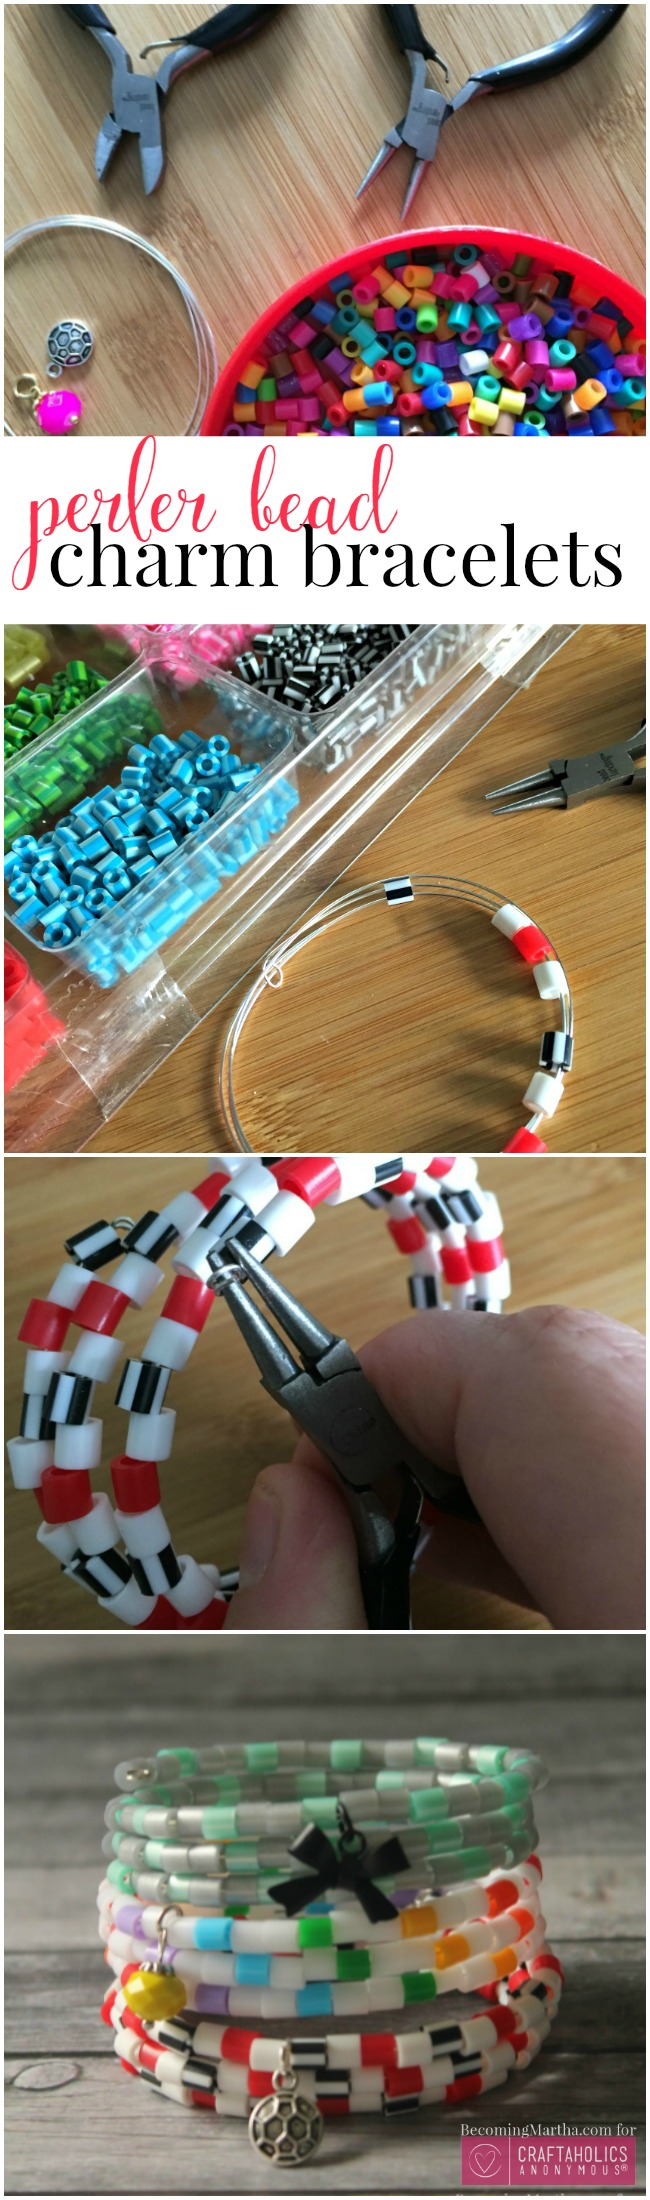 Easy Perler Bead Charm Bracelets! Fun and easy craft to make with your tween - craftaholicsanonymous.net